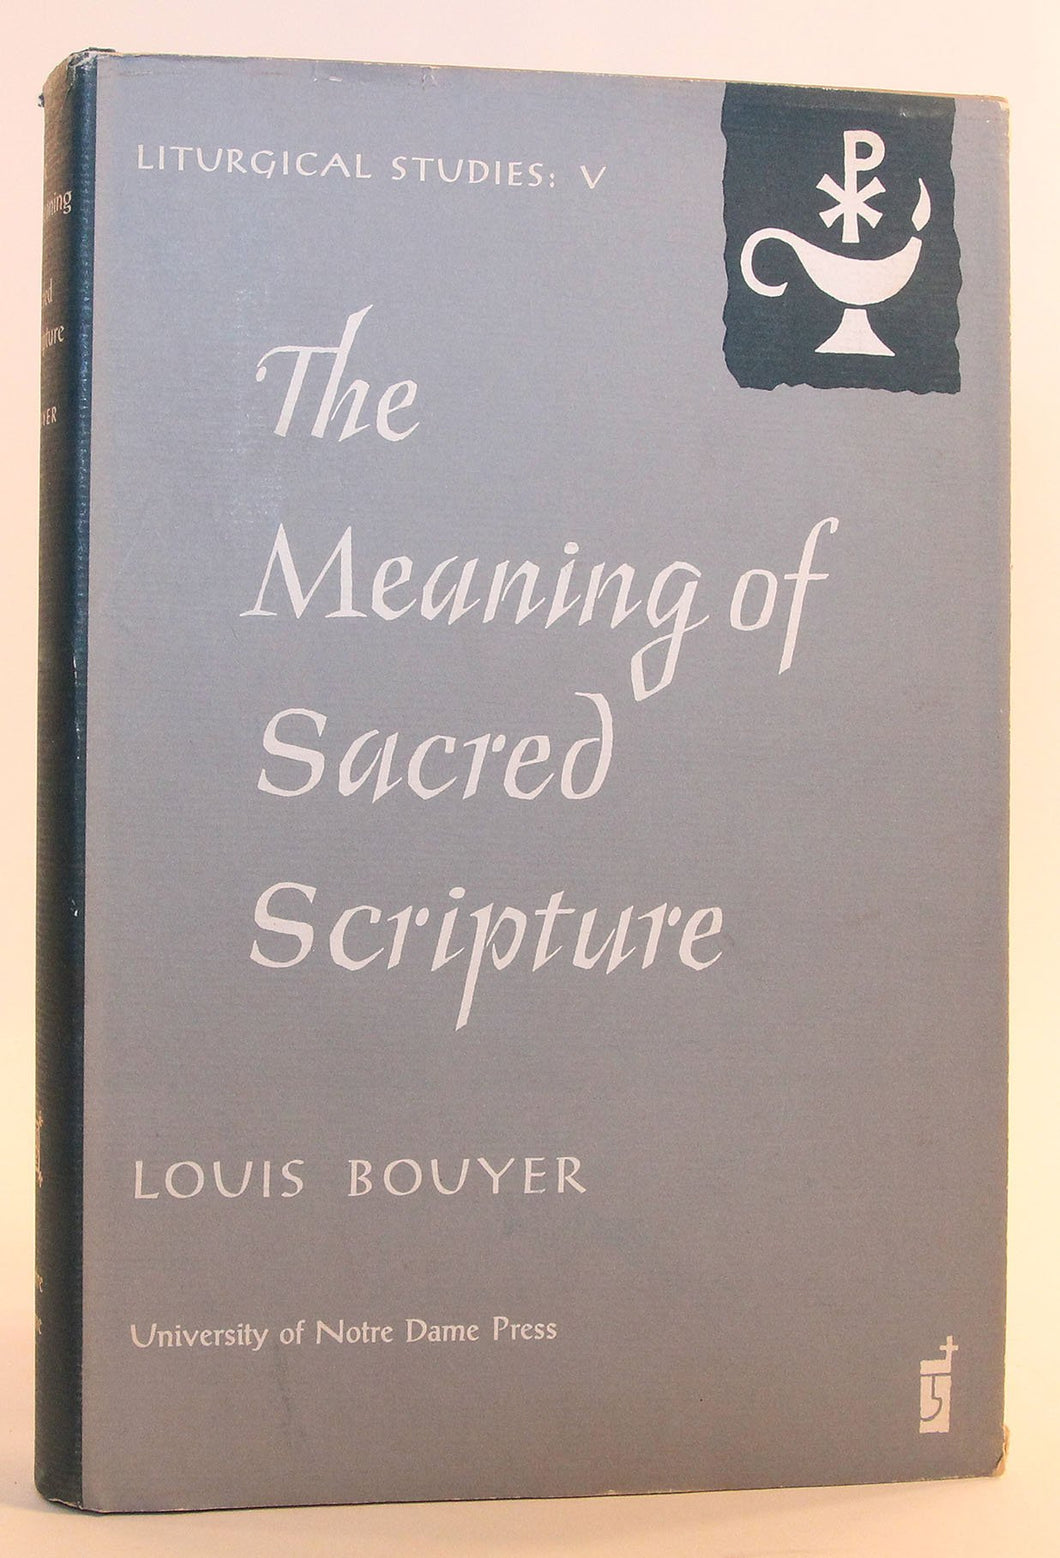 The meaning of Sacred Scripture